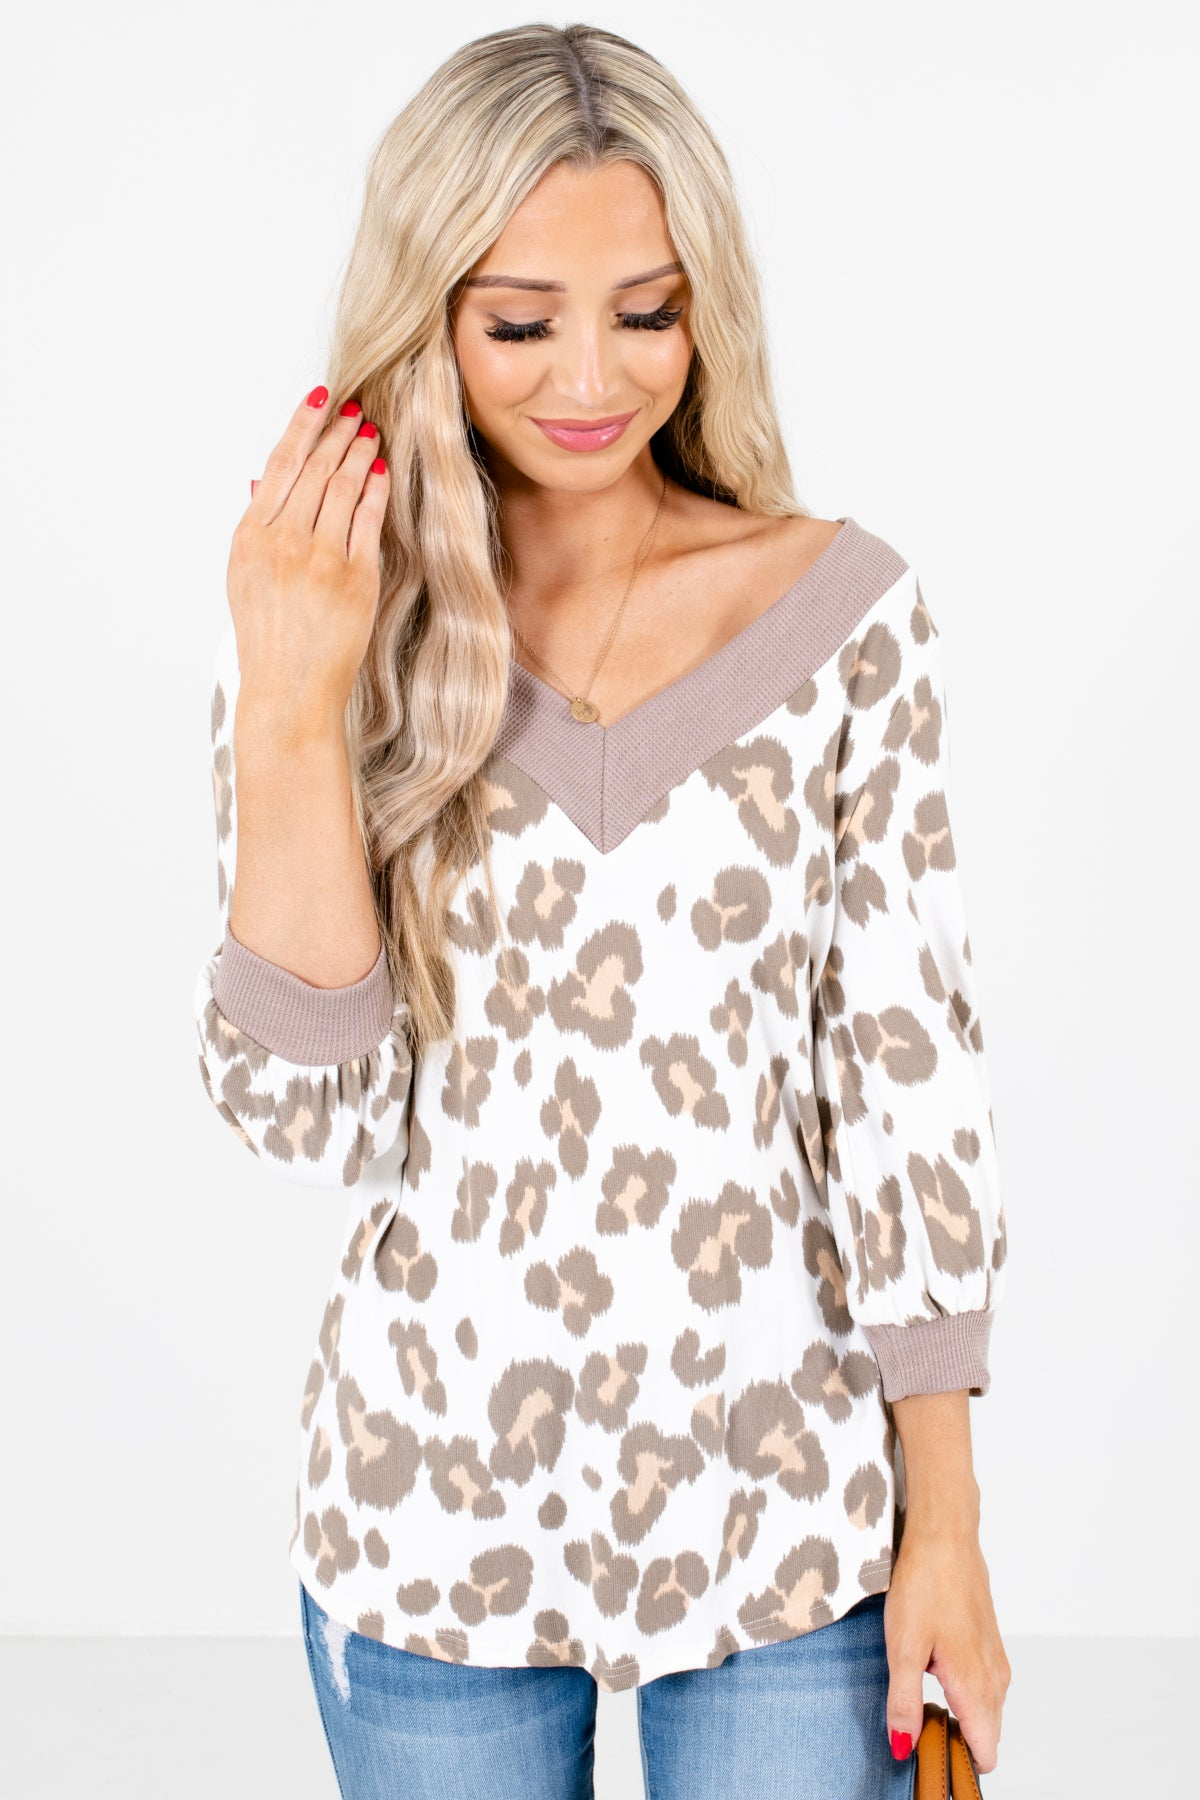 White Multicolored Leopard Print Patterned Boutique Tops for Women